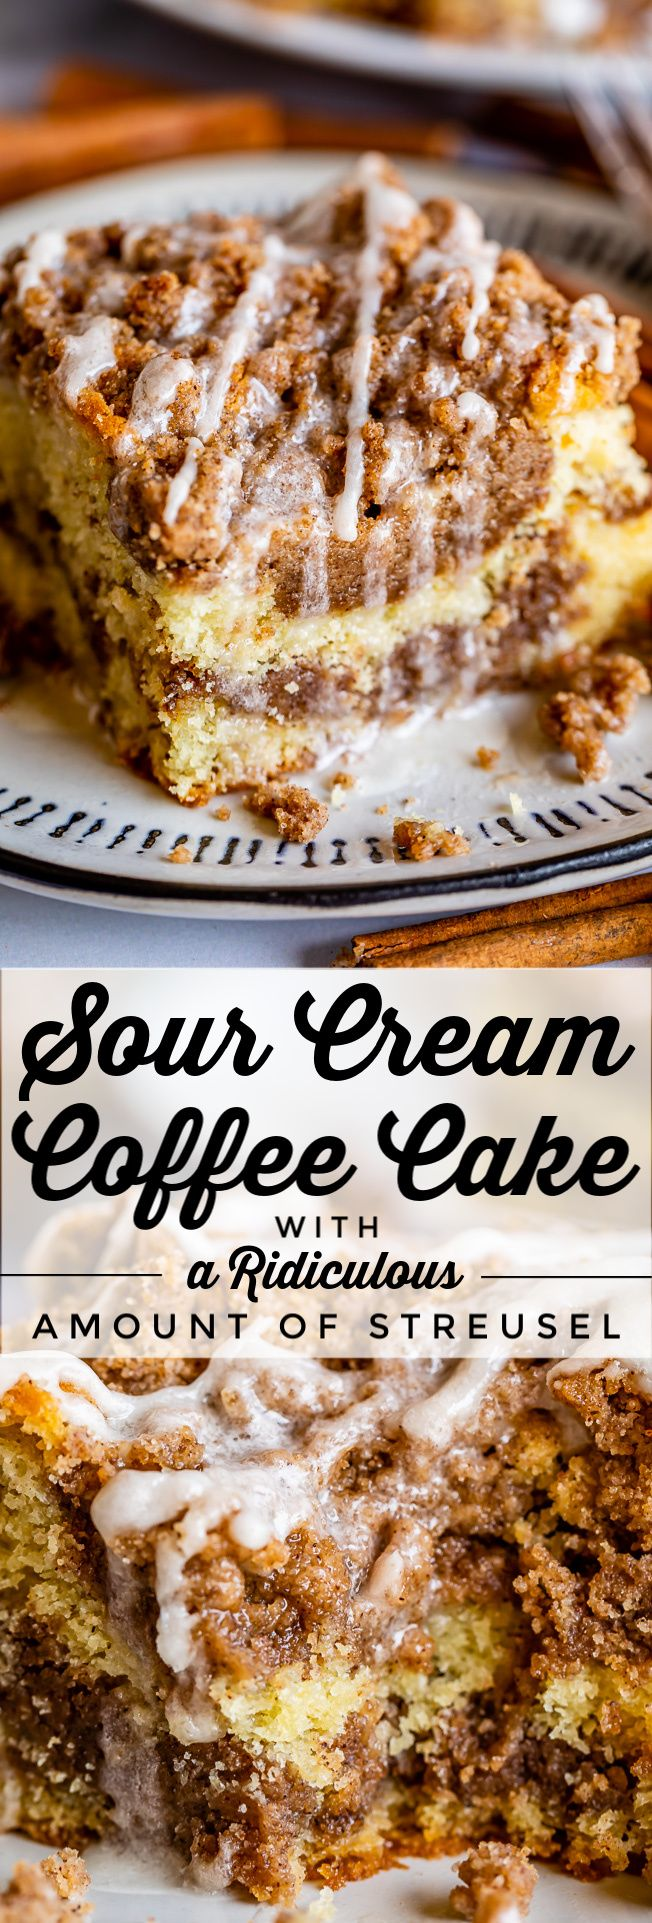 Sour Cream Coffee Cake, with a Ridiculous Amount of Streusel - The Food Charlatan